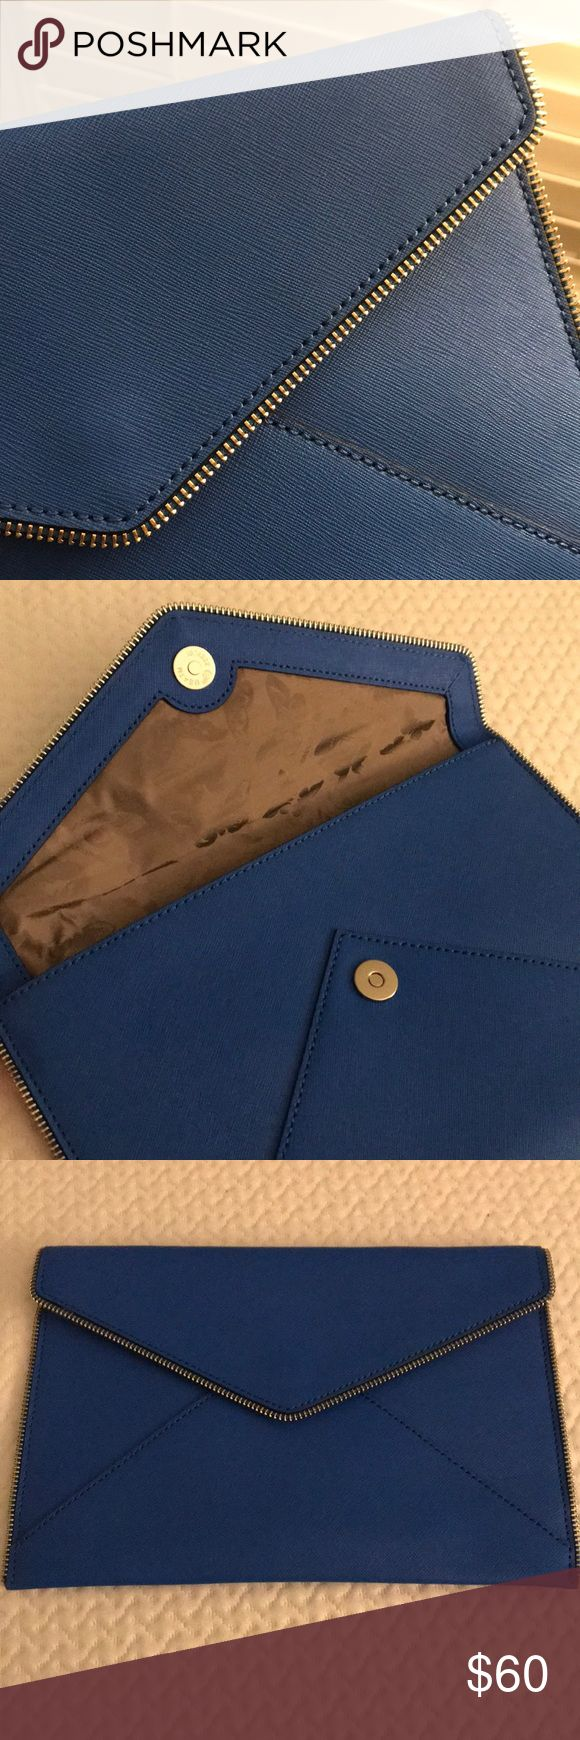 Rebecca Minkoff Saffiano blue clutch Used only once. Beautiful blue envelope clutch from Rebecca Minkoff. Mint condition. This purse adds the perfect pop of color to your outfit. Saffiano leather!! No dust bag. Rebecca Minkoff Bags Clutches & Wristlets